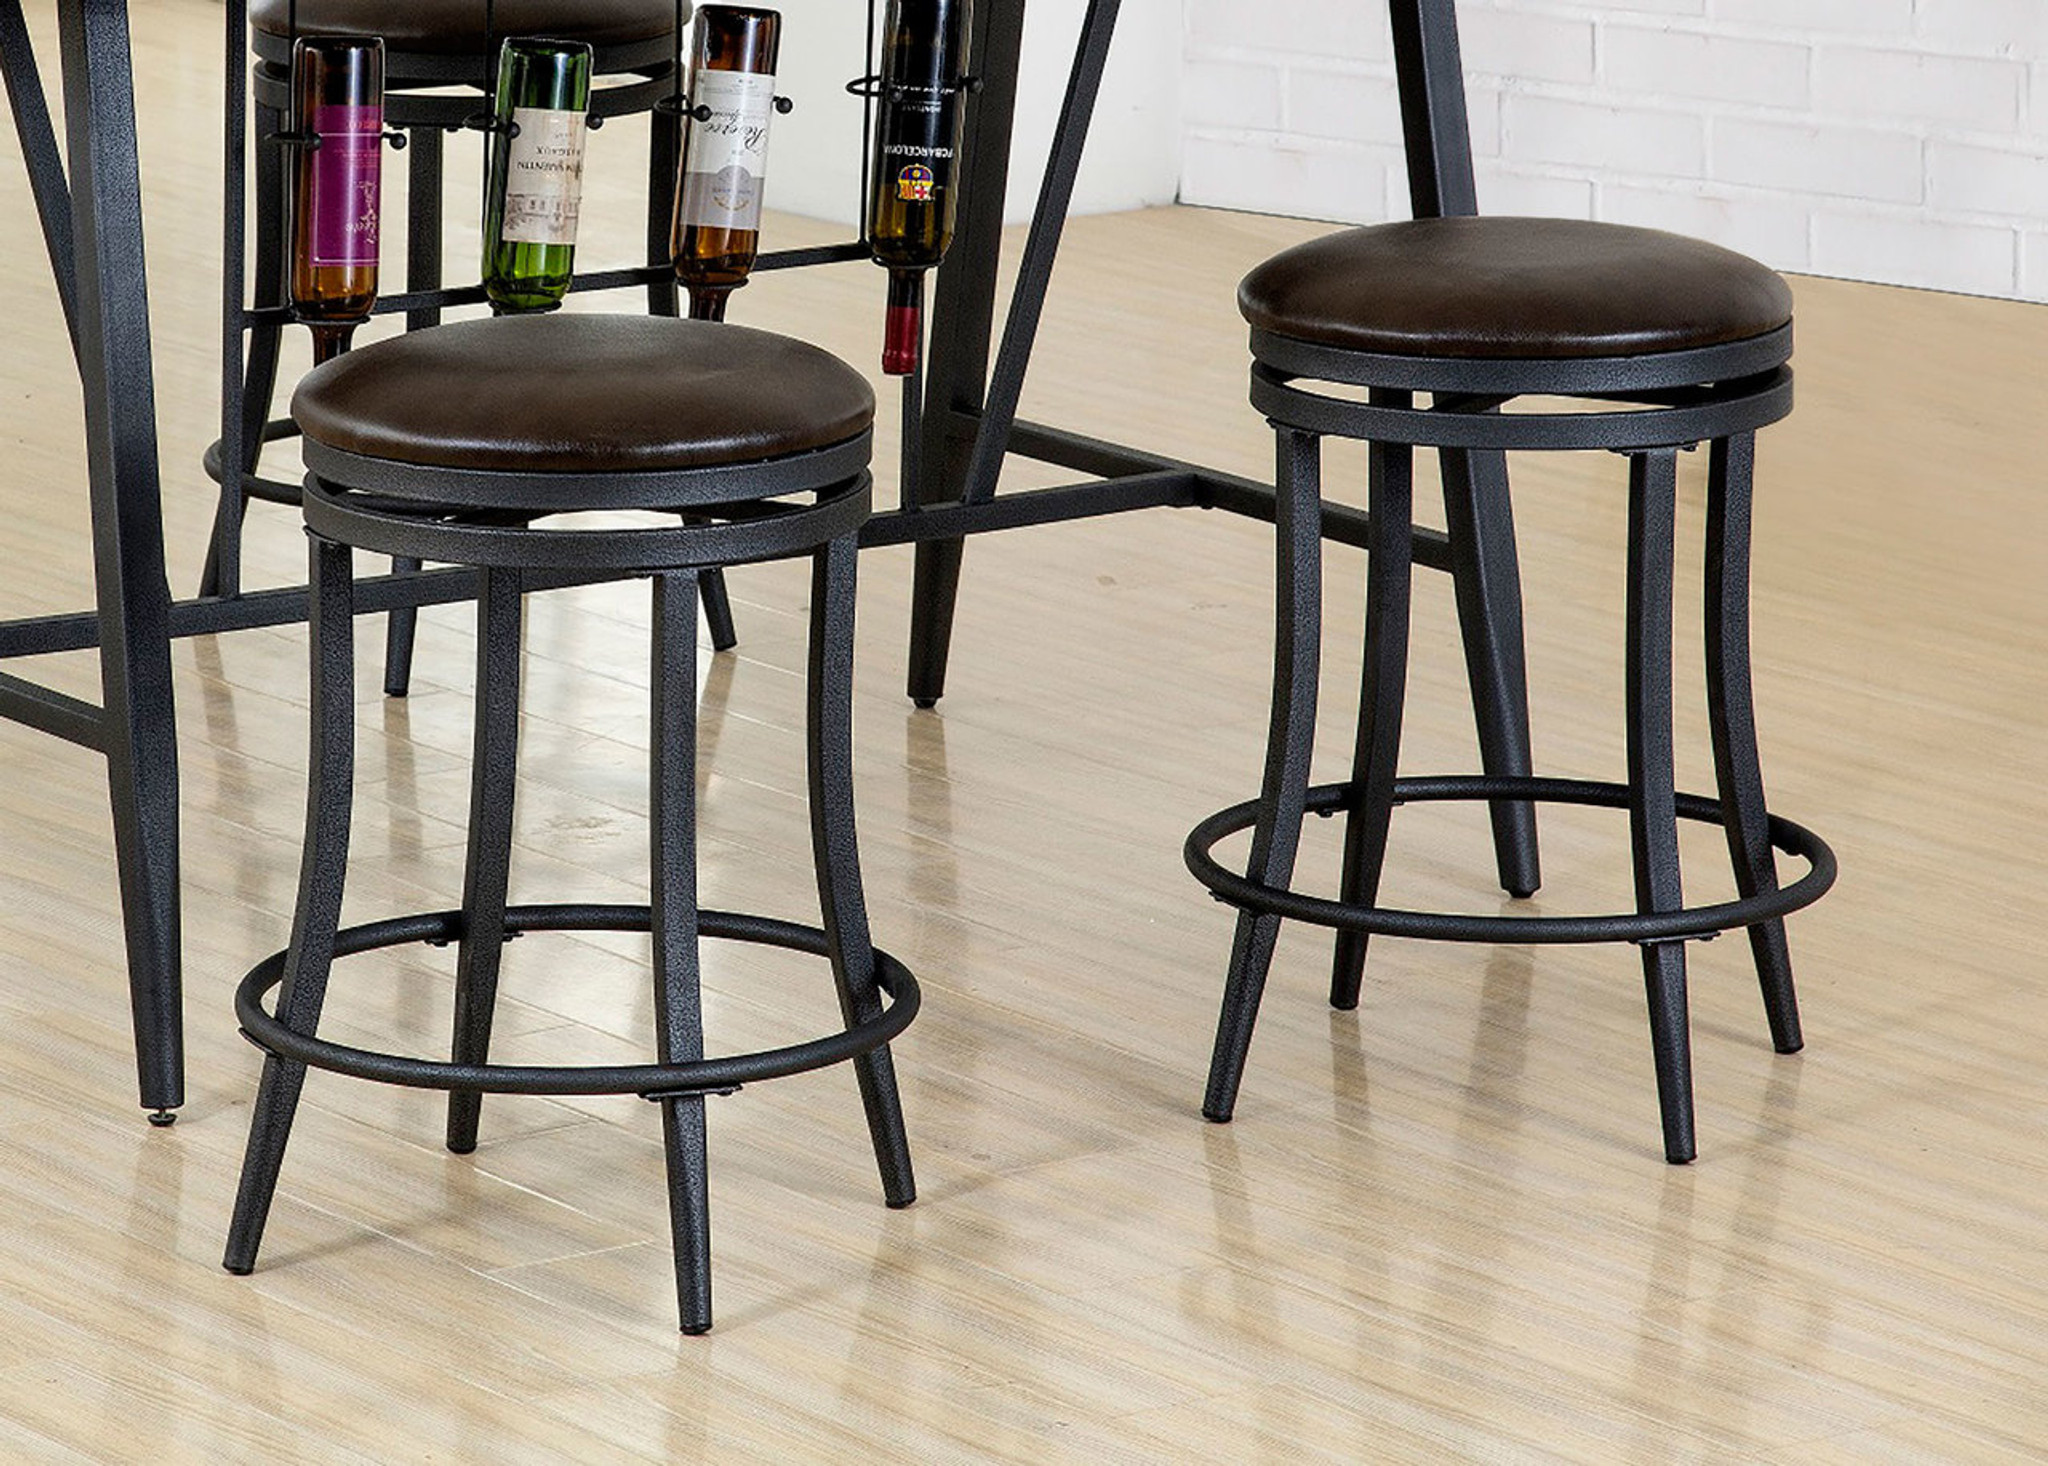 kitchen design stools interesting height mesmerizing at stool fascinating bar steel white furniture of red target from backless industrial swivel brushed counter with